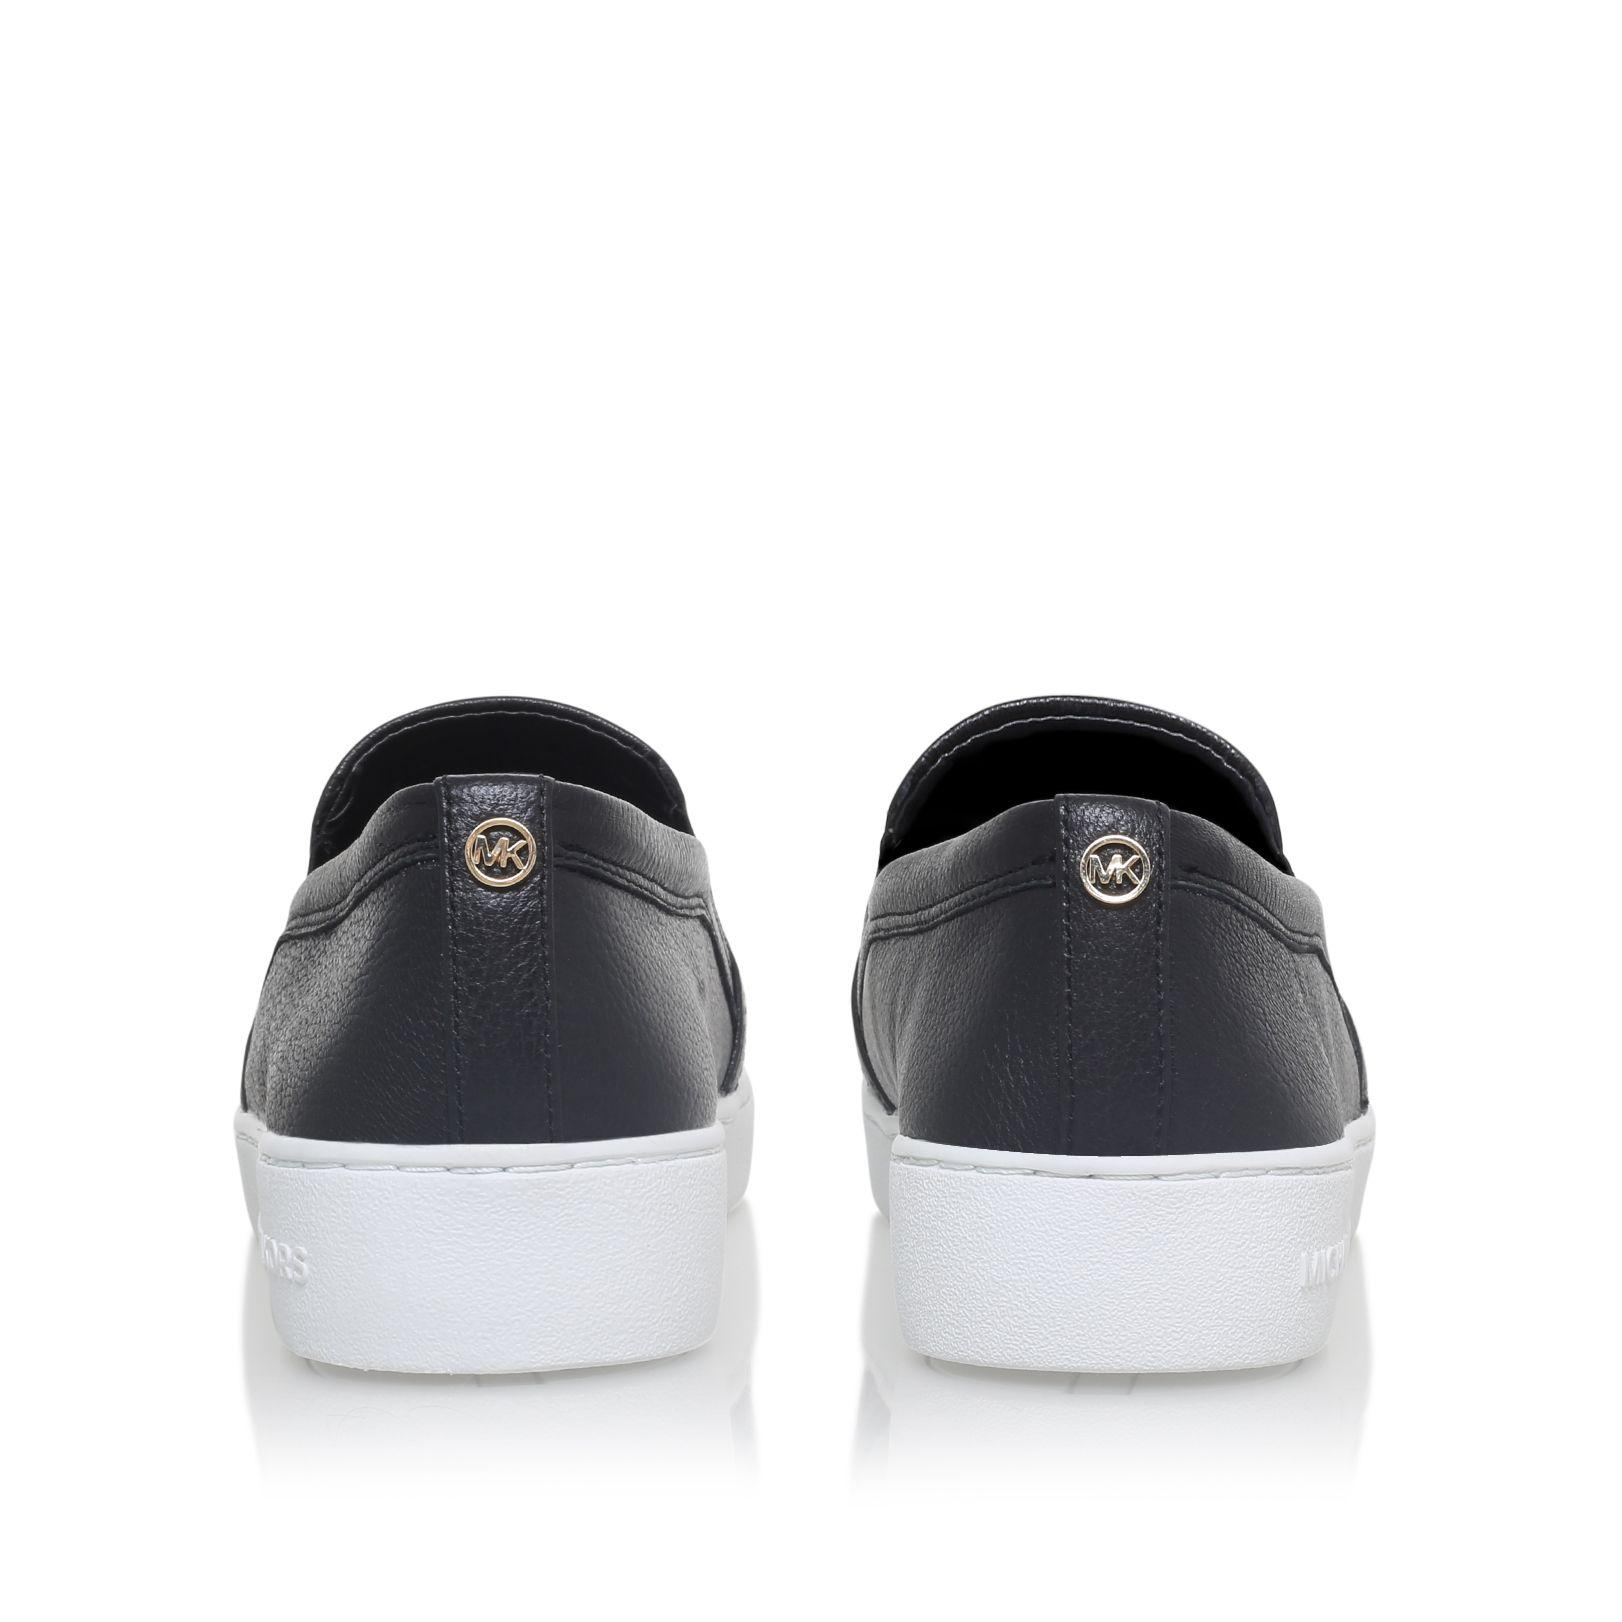 Michael Kors Leather Leo Slip On Sneakers in Black